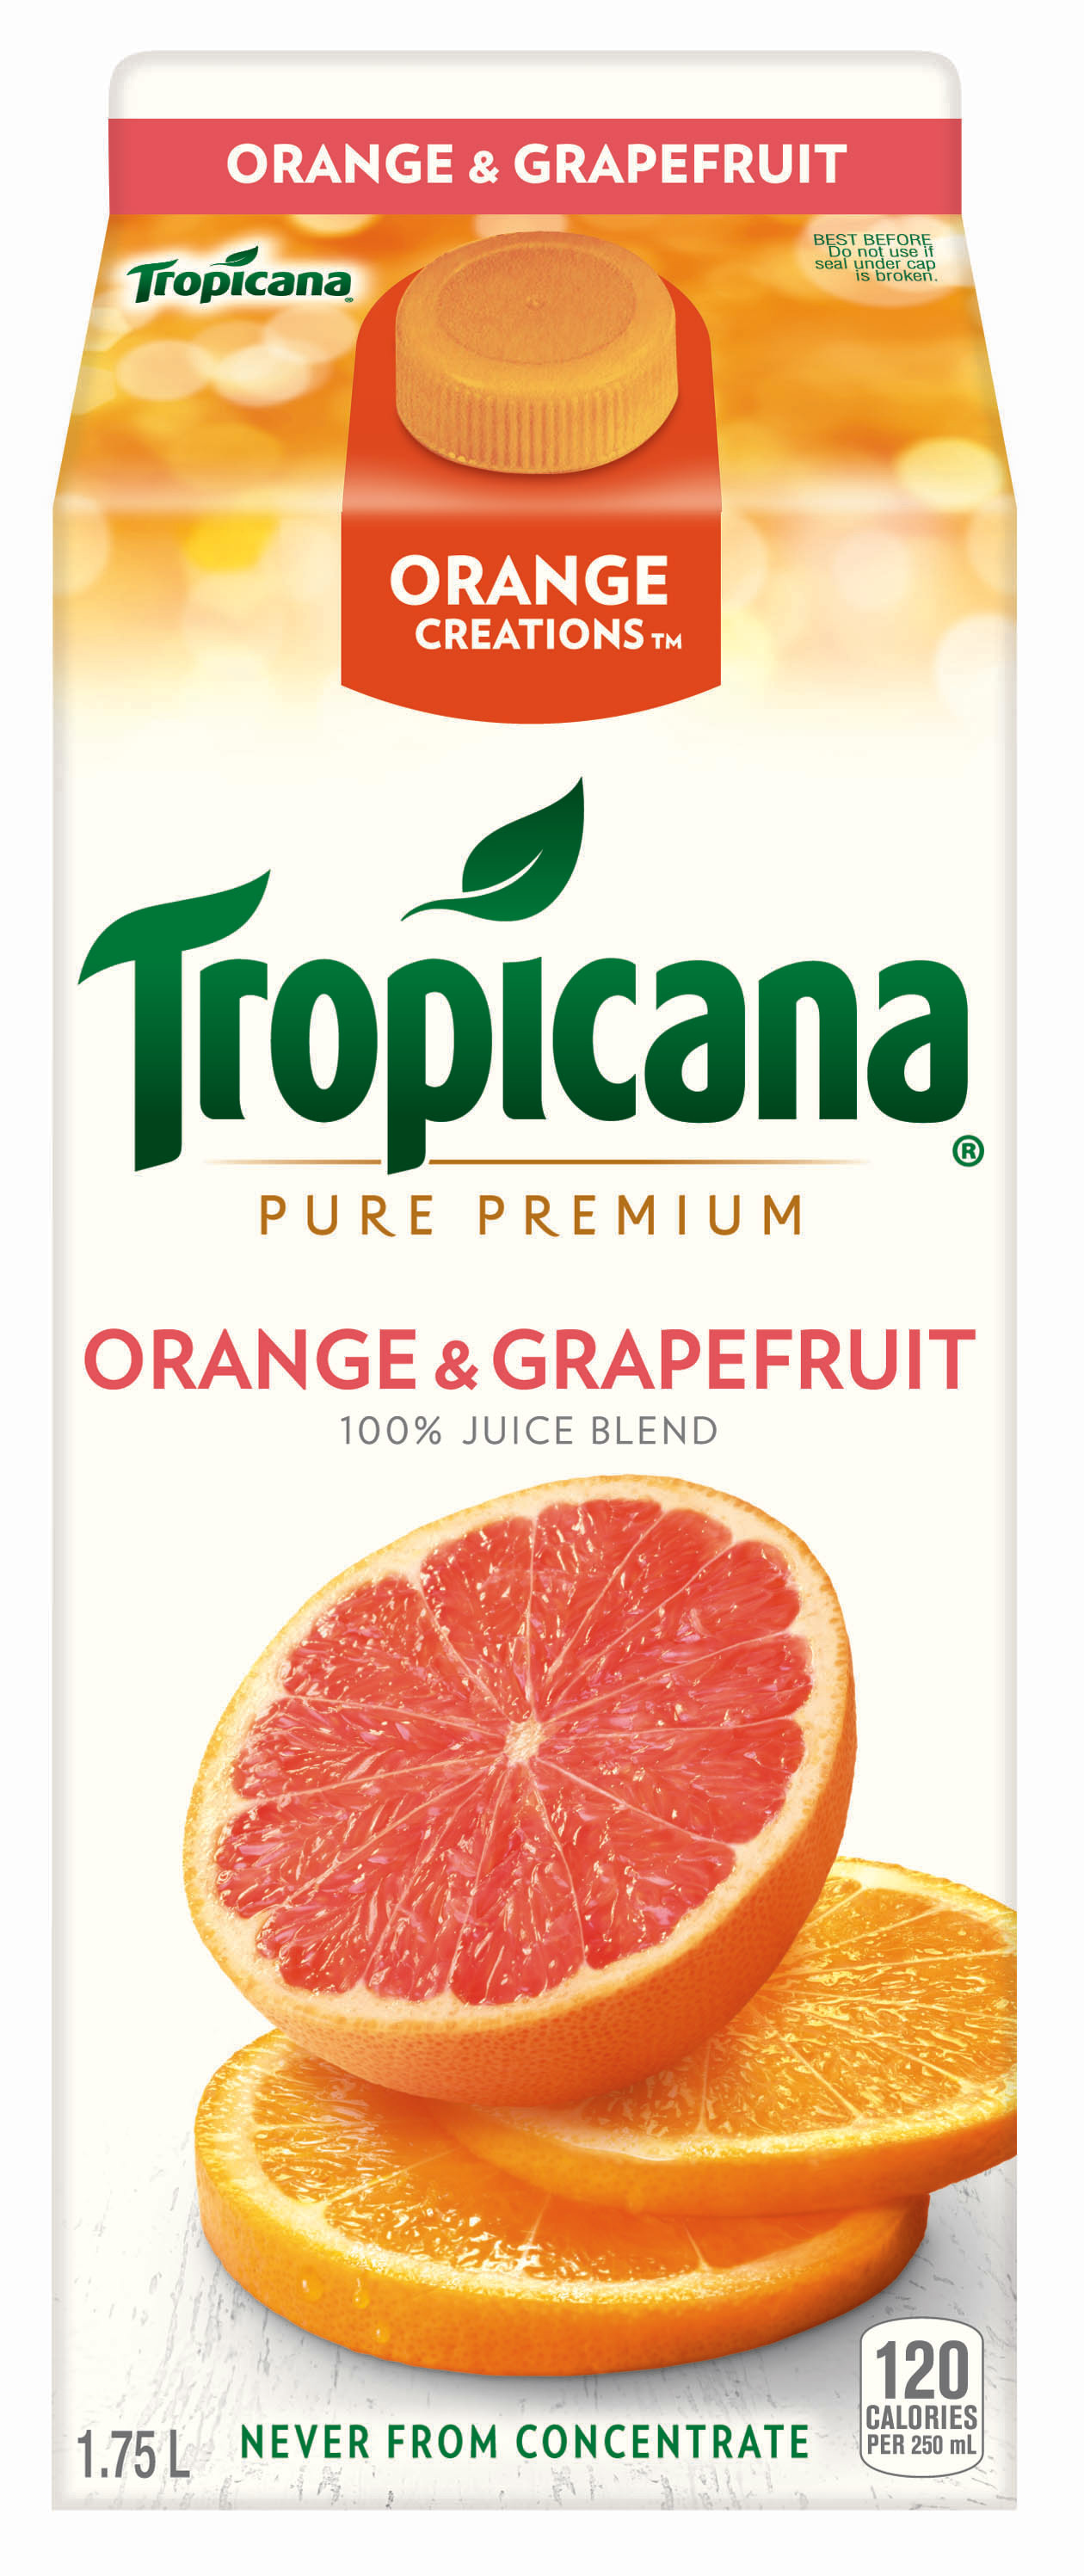 Tropicana® Orange Creations™ – Orange & Grapefruit